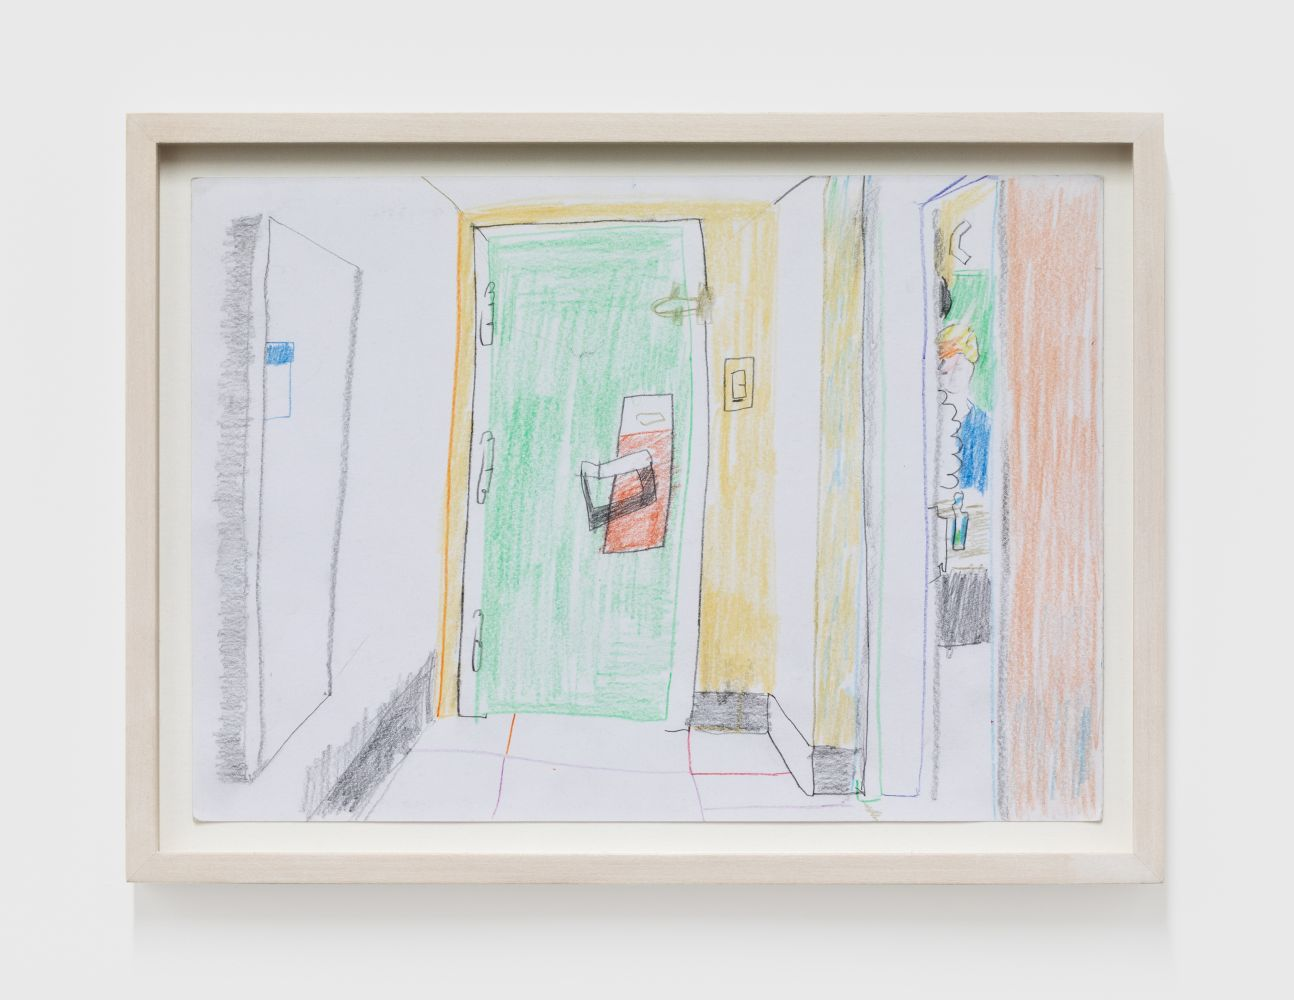 Gerlind Zeilner Motel 2, 2019 Colored pencil on paper 8 1/4 x 11 3/4 in 21 x 30 cm (GZE20.017)